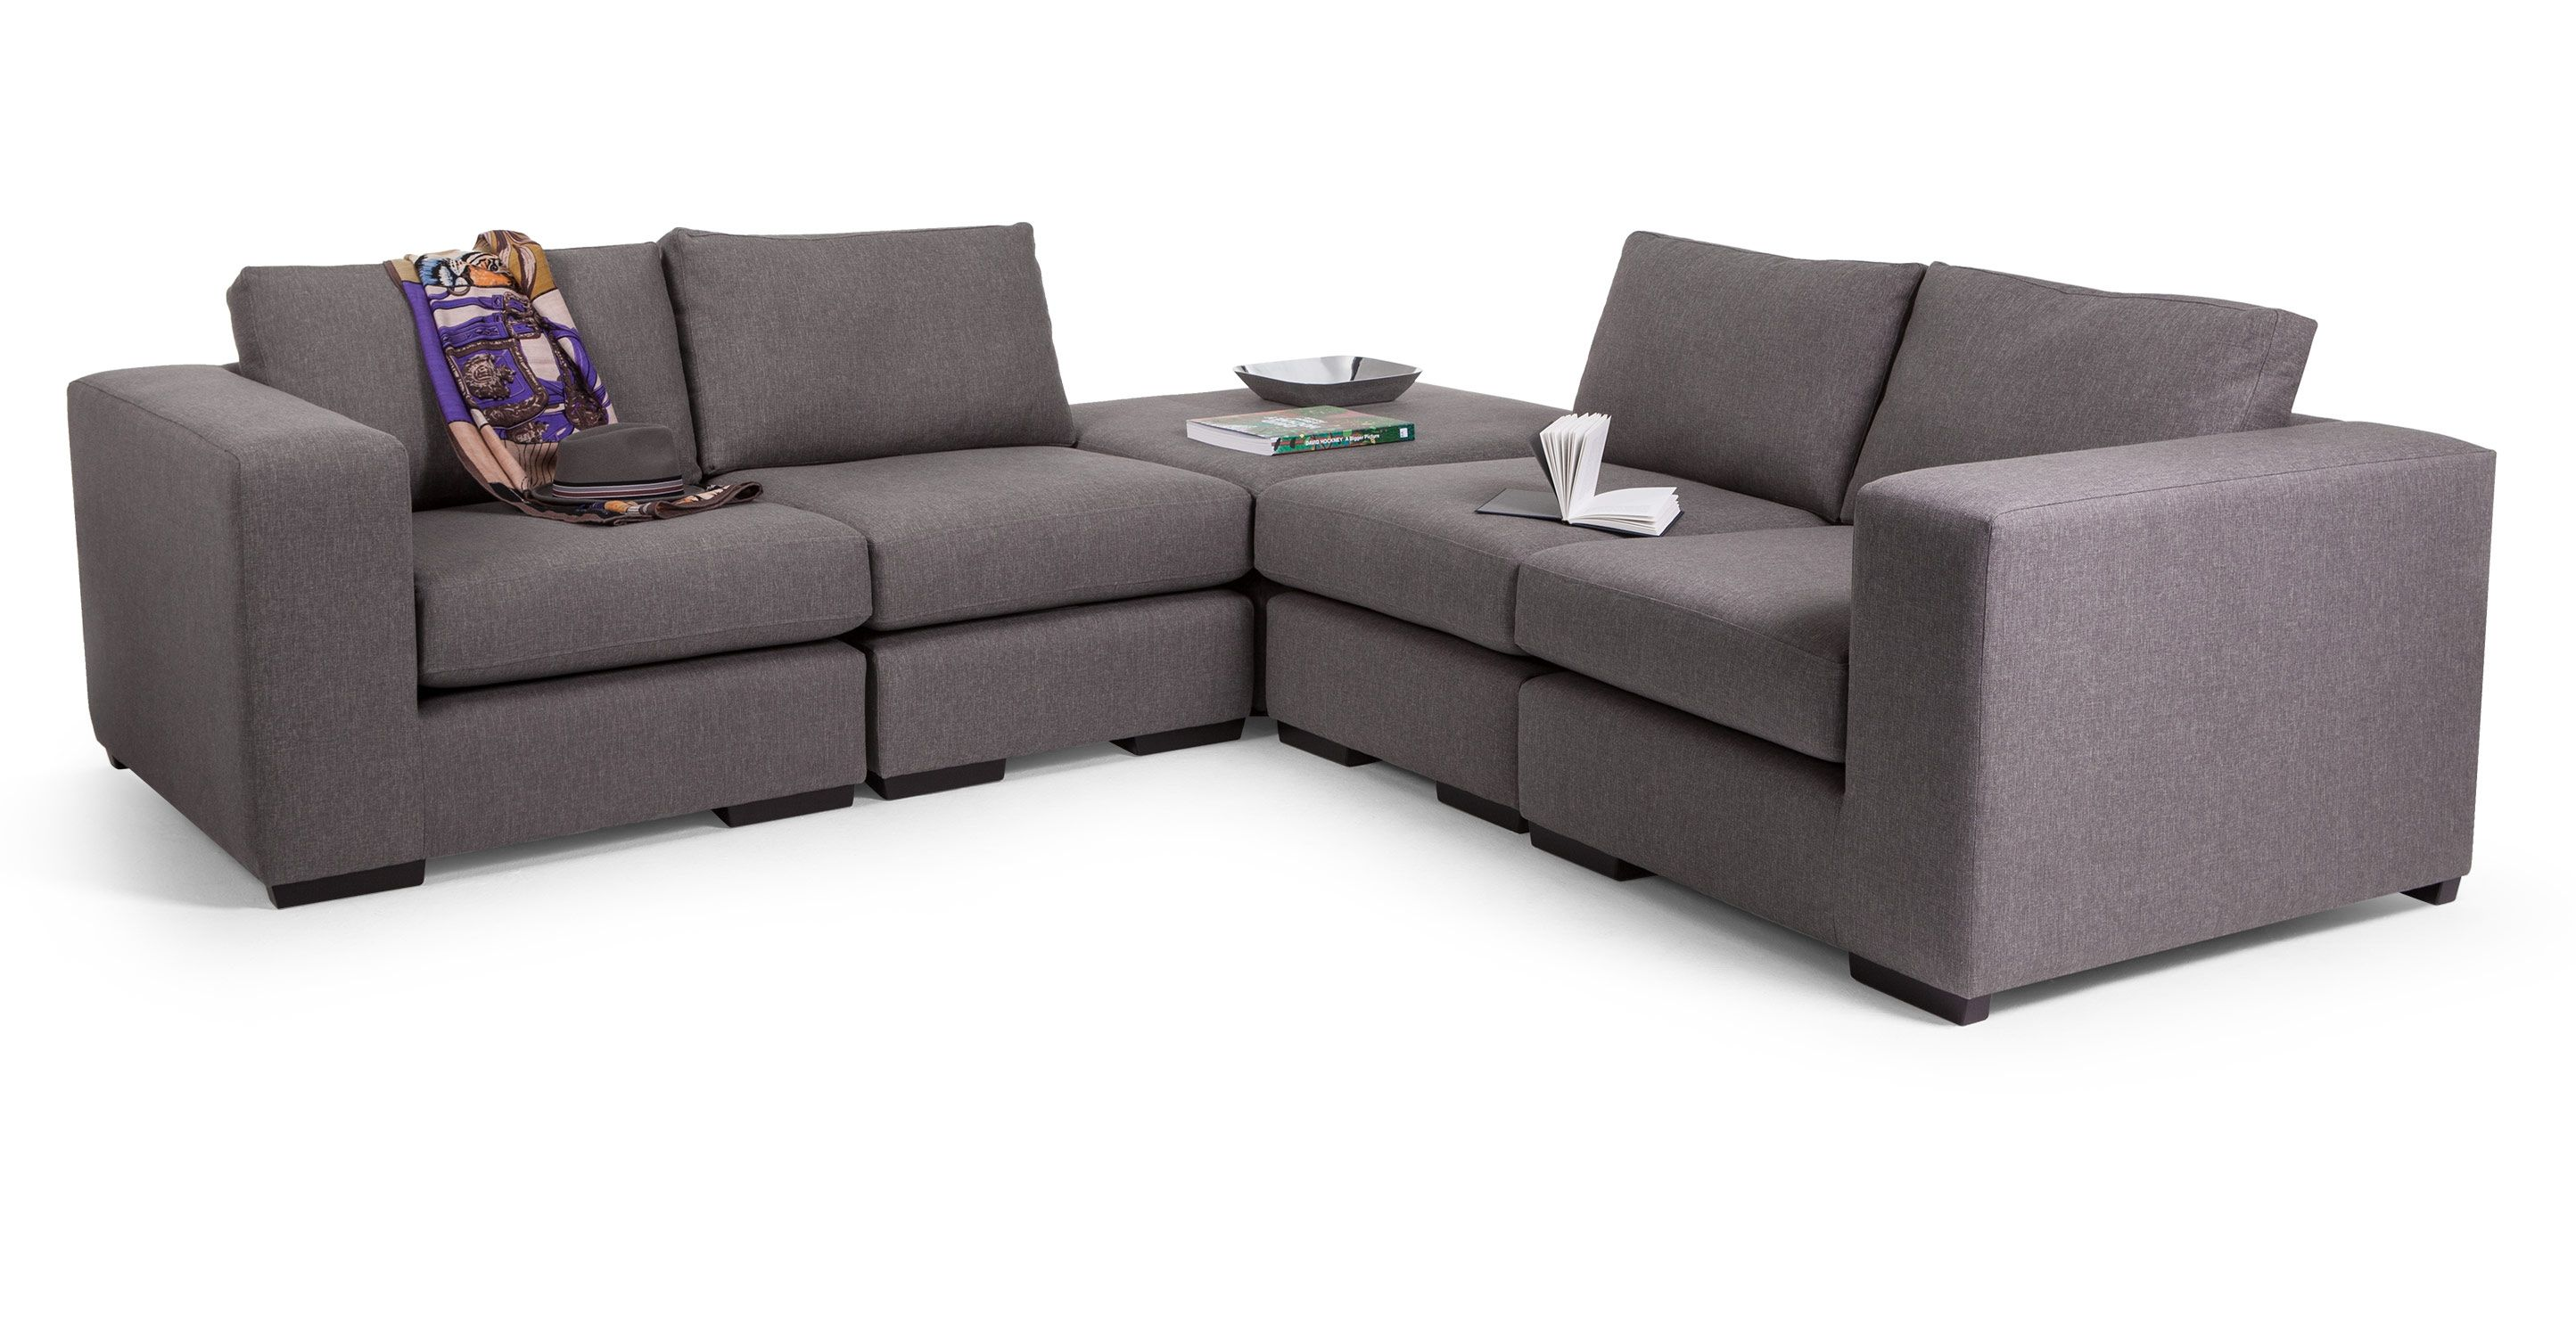 Cheap Modular Lounges Abingdon Modular Corner Sofa Group Misty Grey Sofa Back